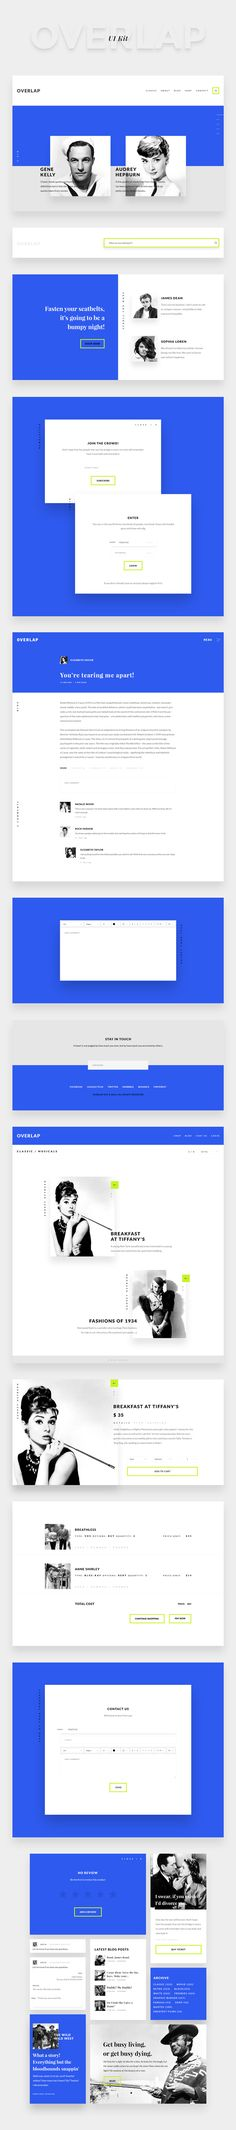 The freebie of the day is a modern minimalist component based UI kit, perfect for designing a clean and stylish website...